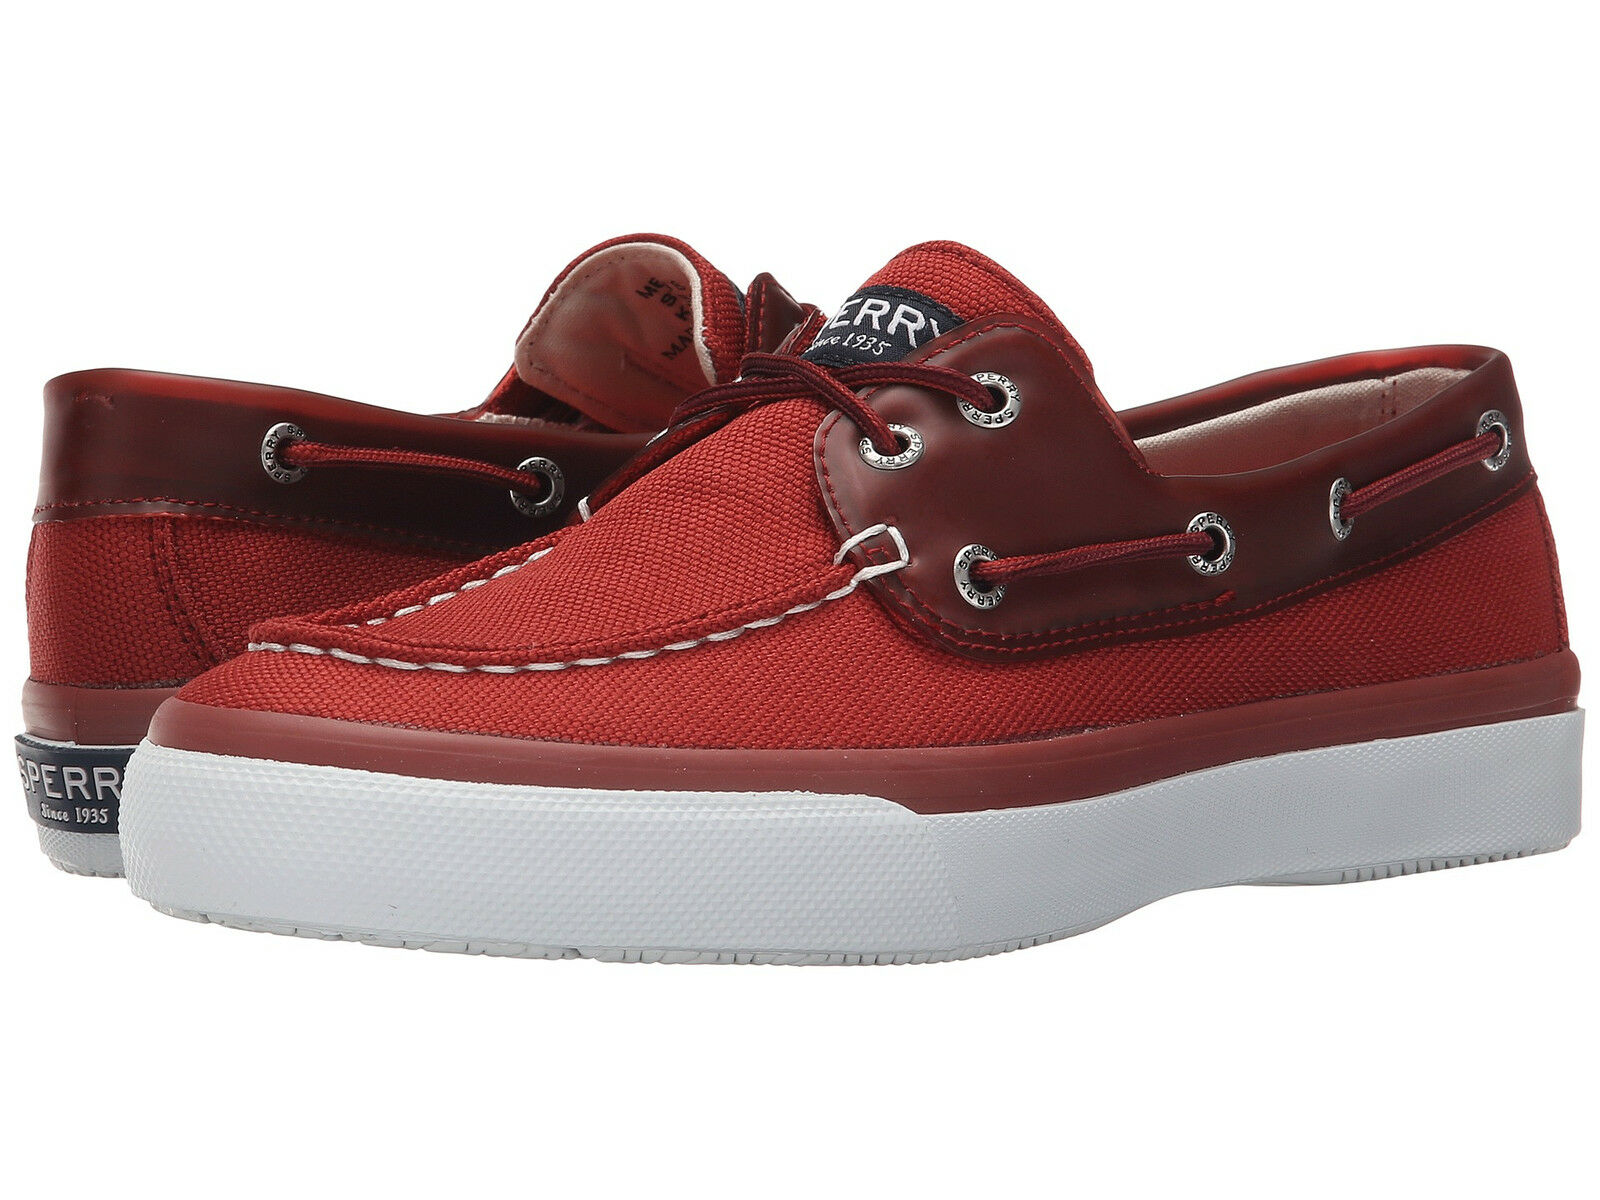 SPERRY - 2 EYE BOAT SHOES - SPERRY Uomo - RED 1cca4f